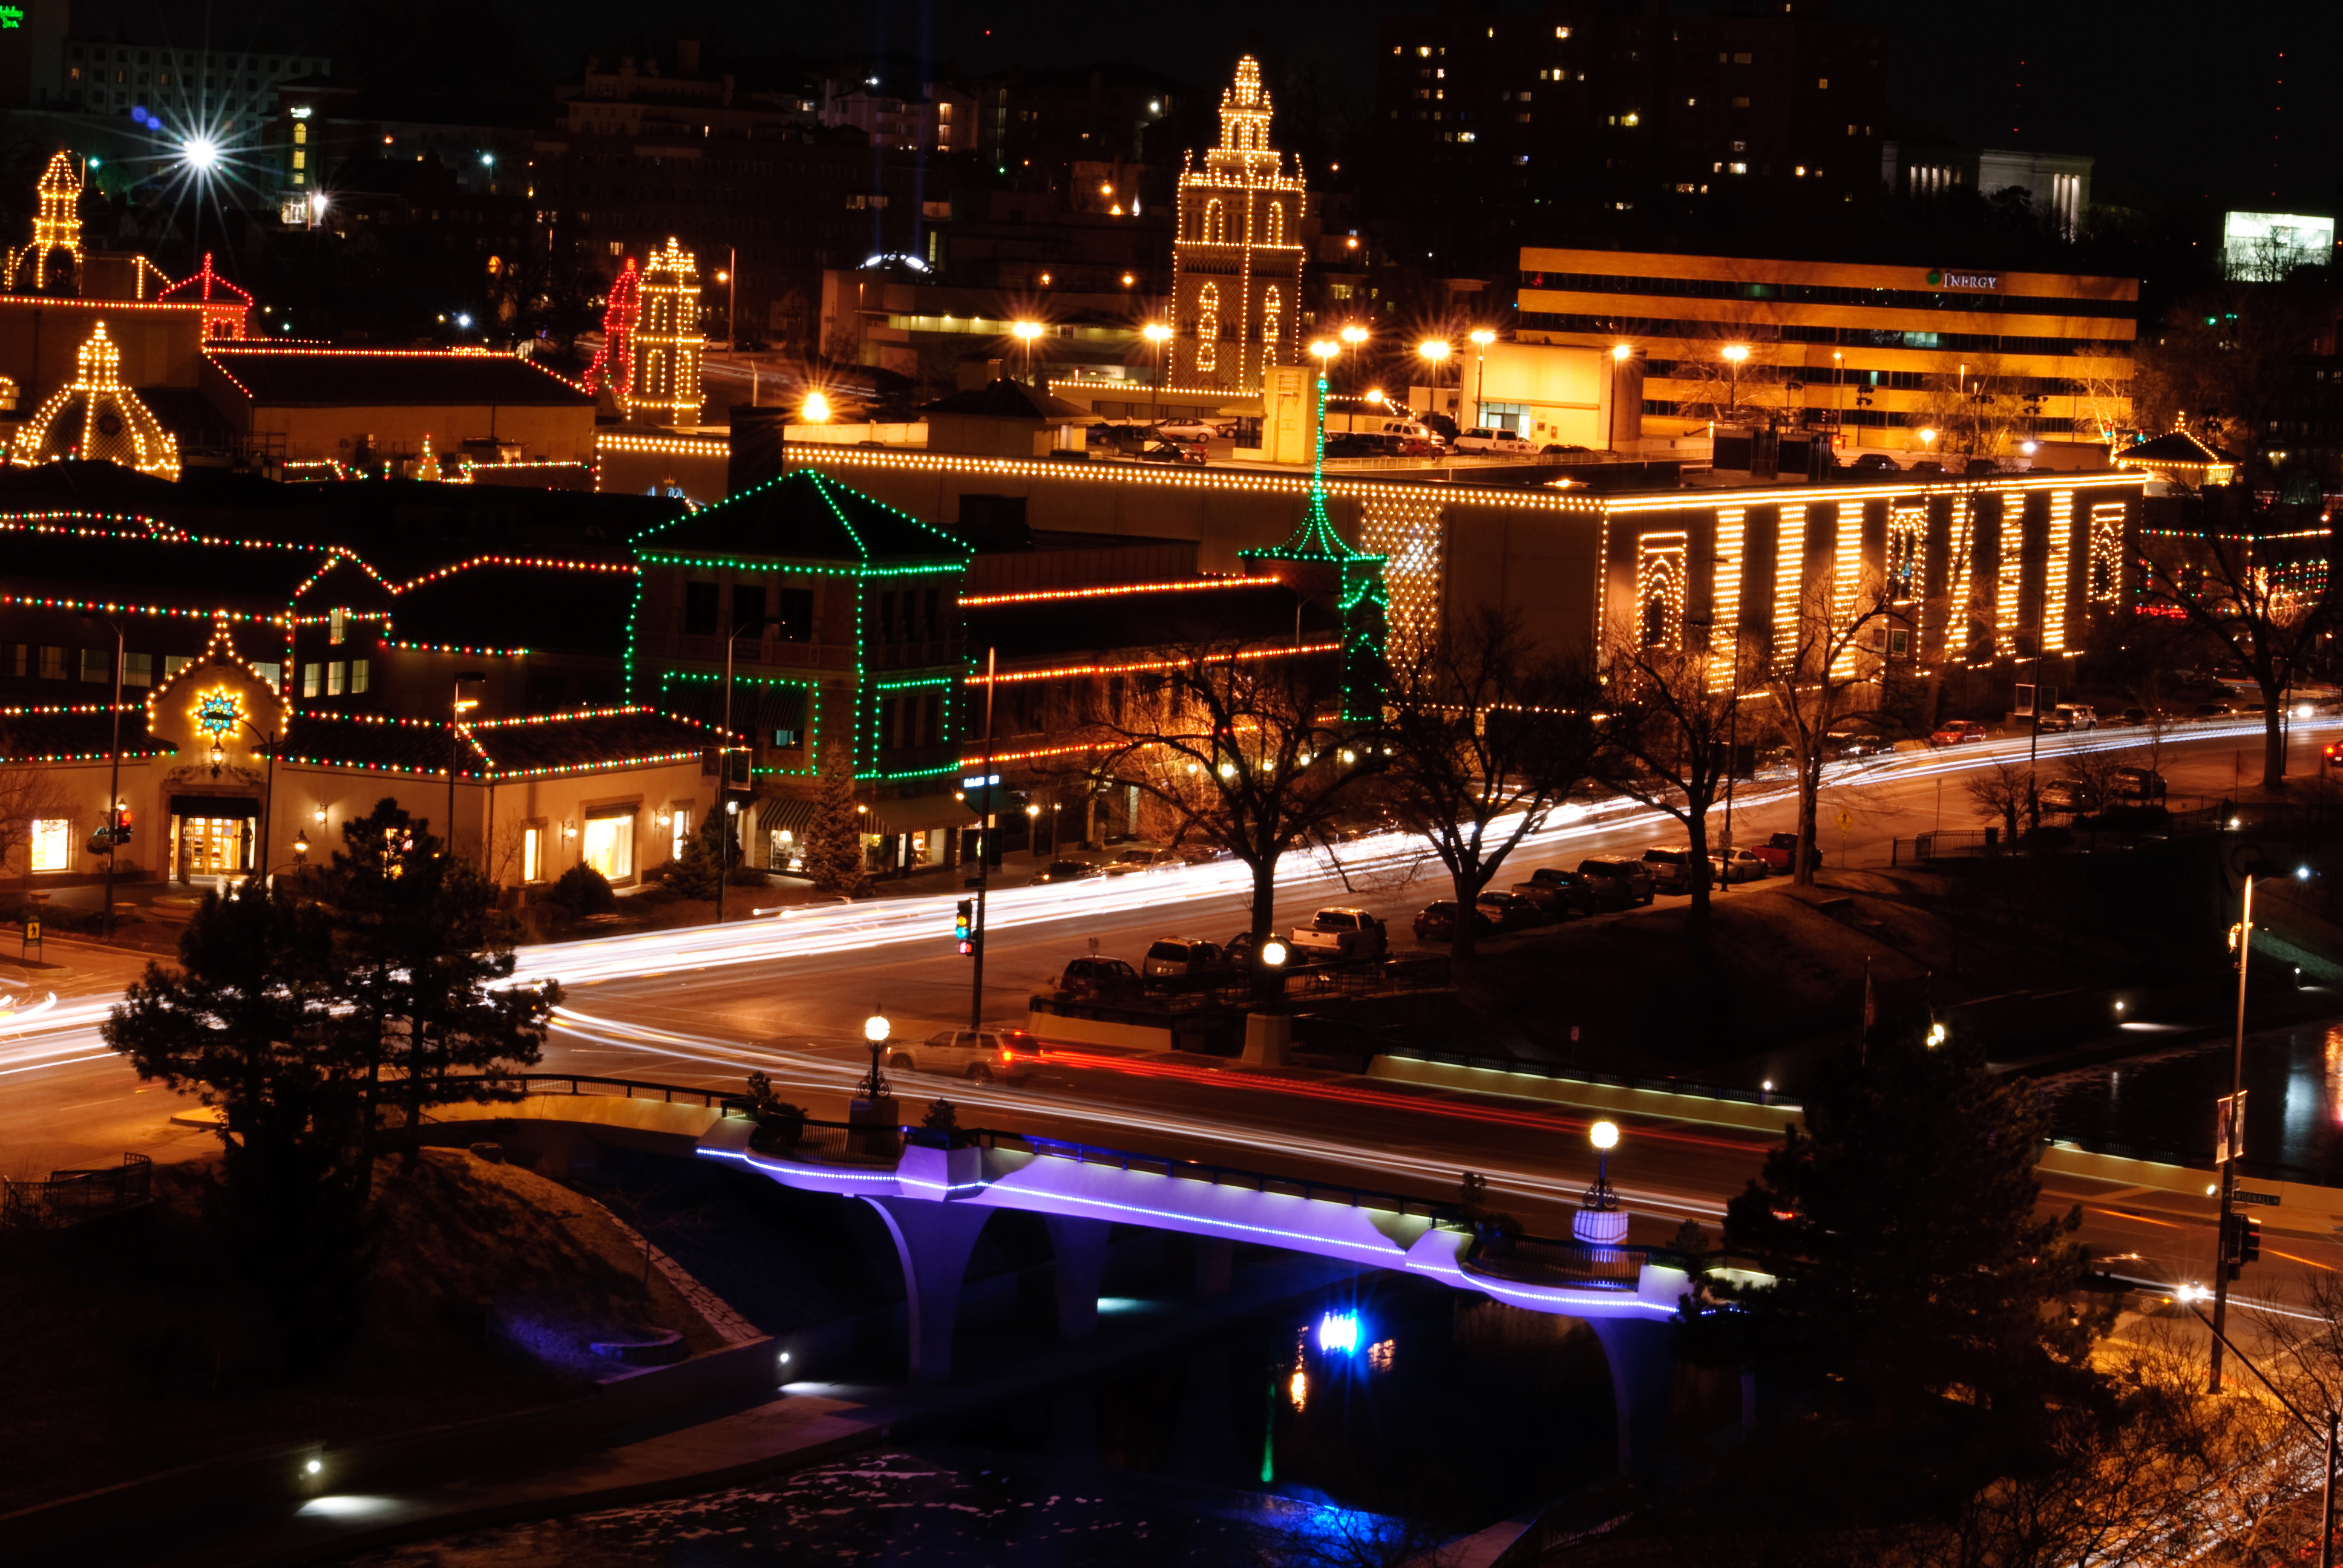 Christmas lights adorn the shops and businesses in the Country Club Plaza in Kansas City, Missouri. The Law Office of Will M. Helixon maintains a office in the Plaza on Nichols Road.